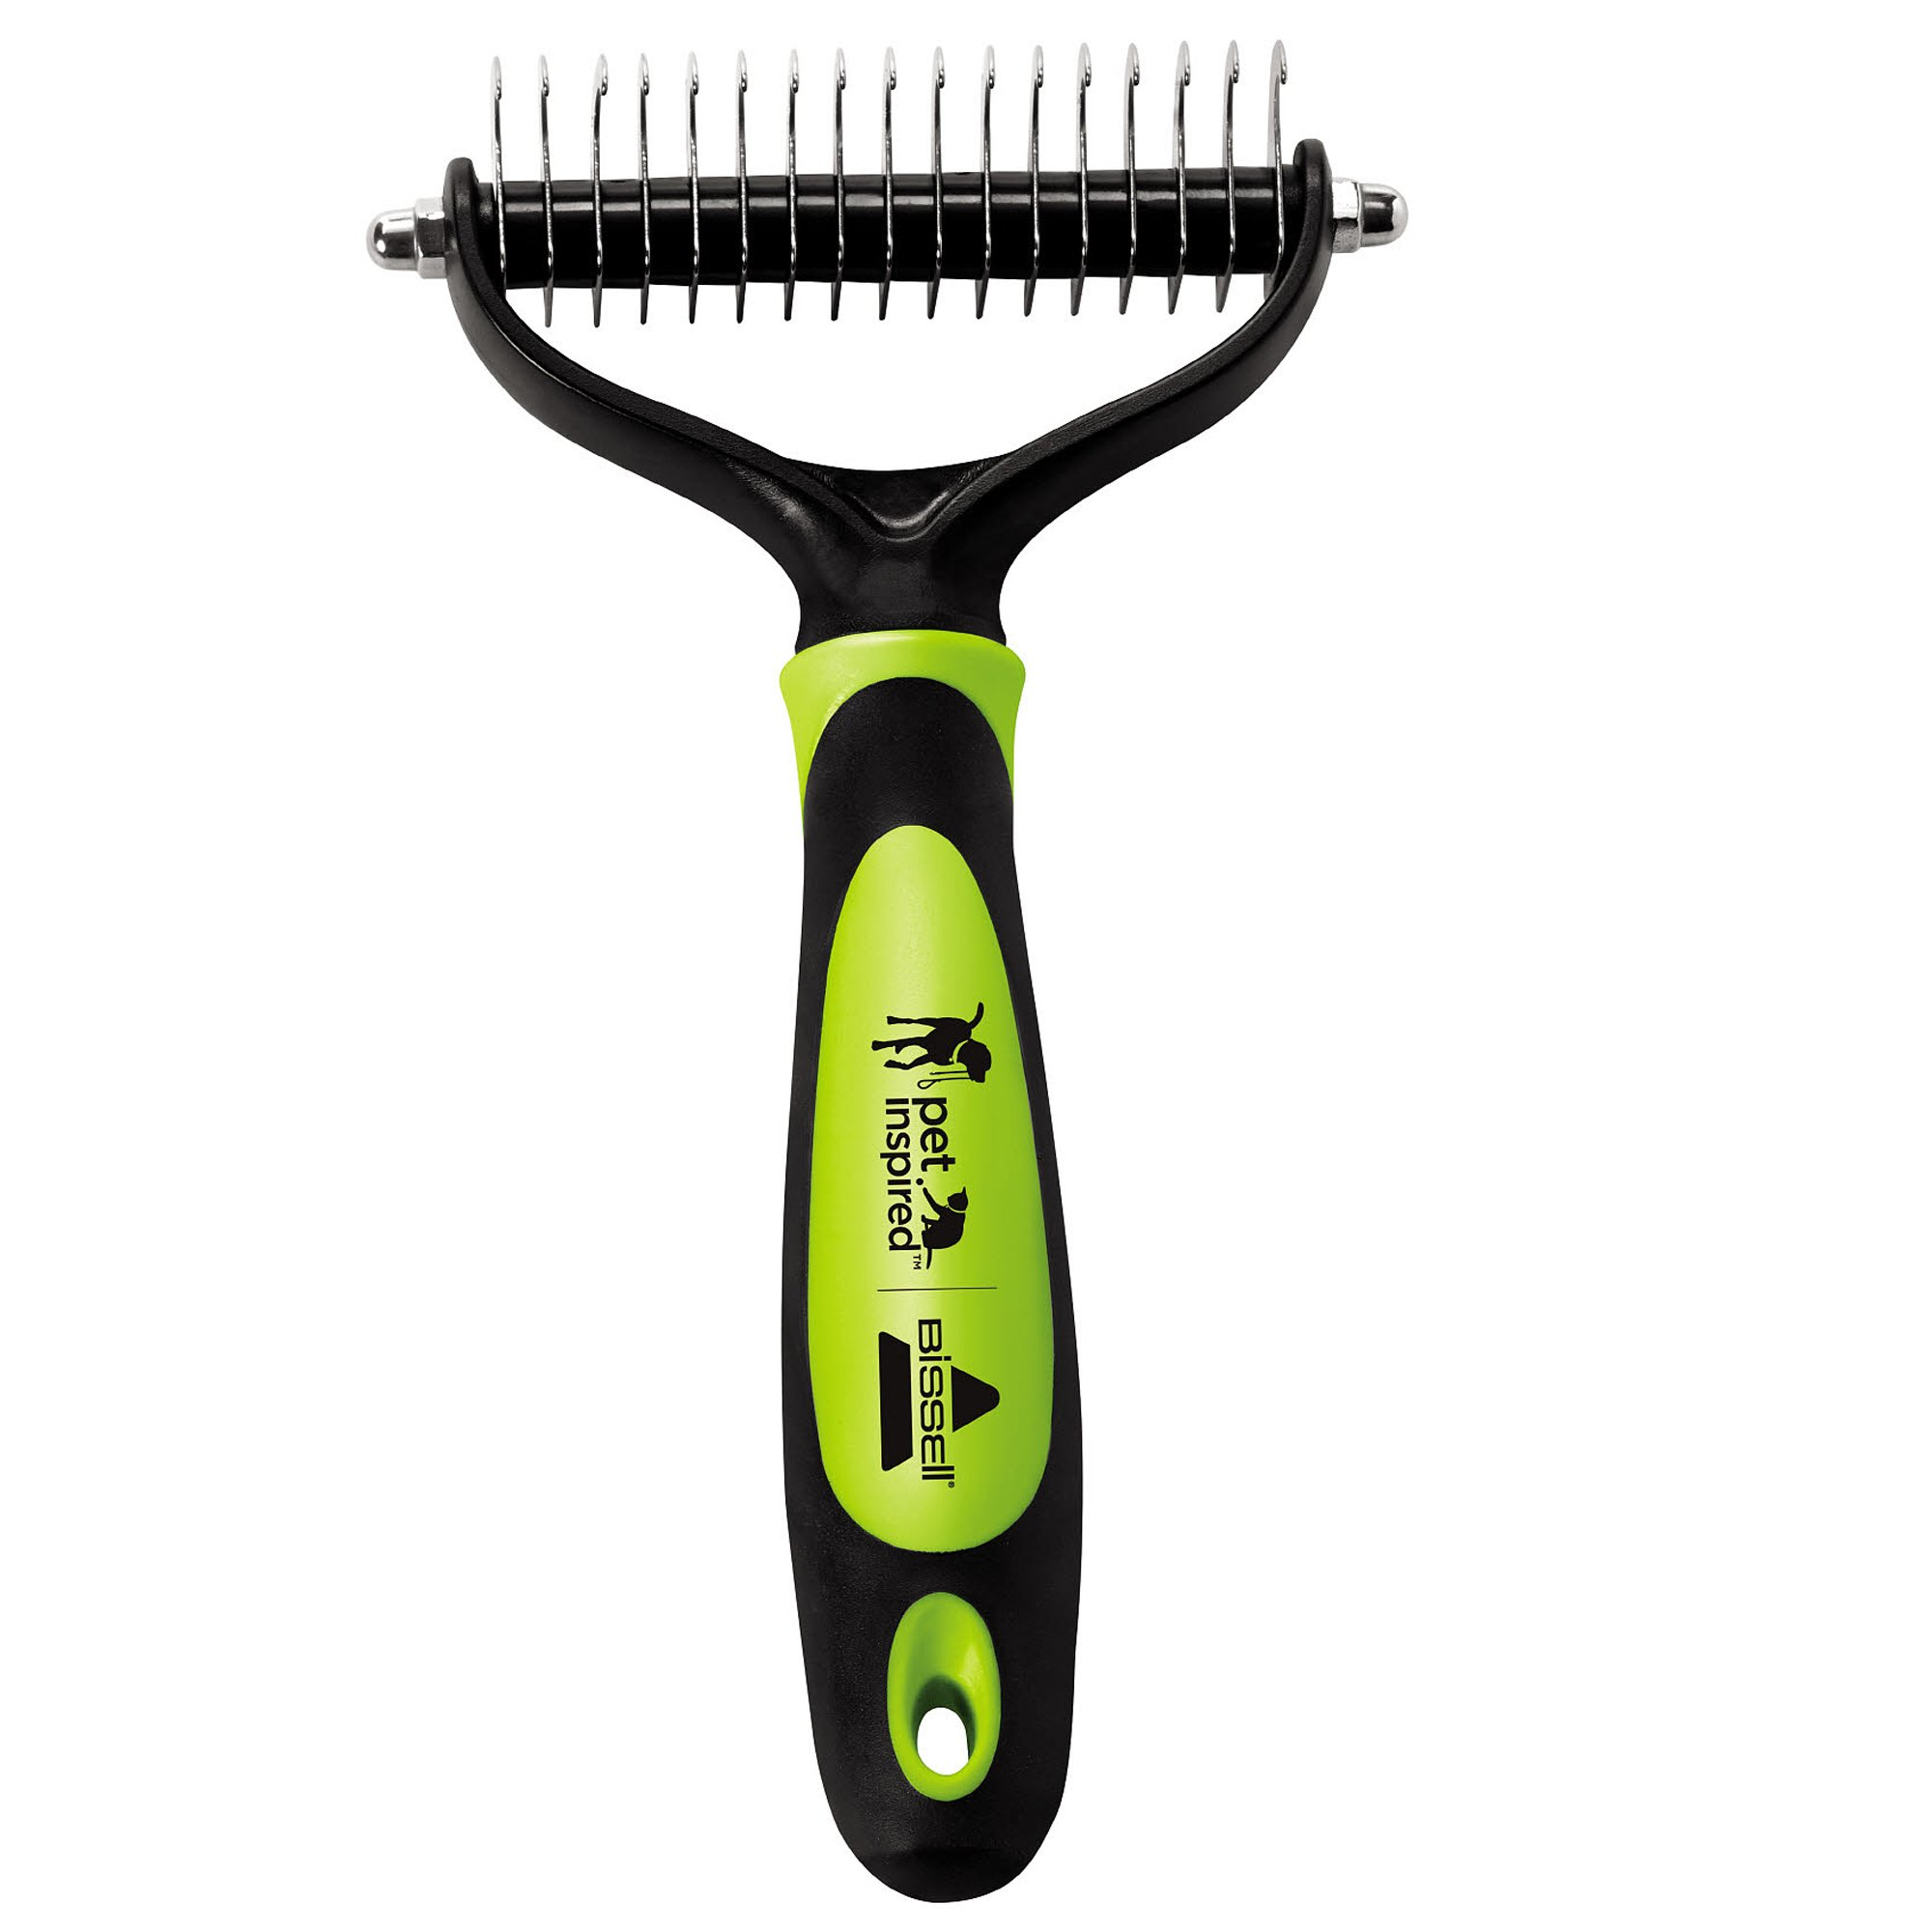 Bissell FURGET IT Cat and Dog Grooming Brush with Shedding and Dematting, 2064A